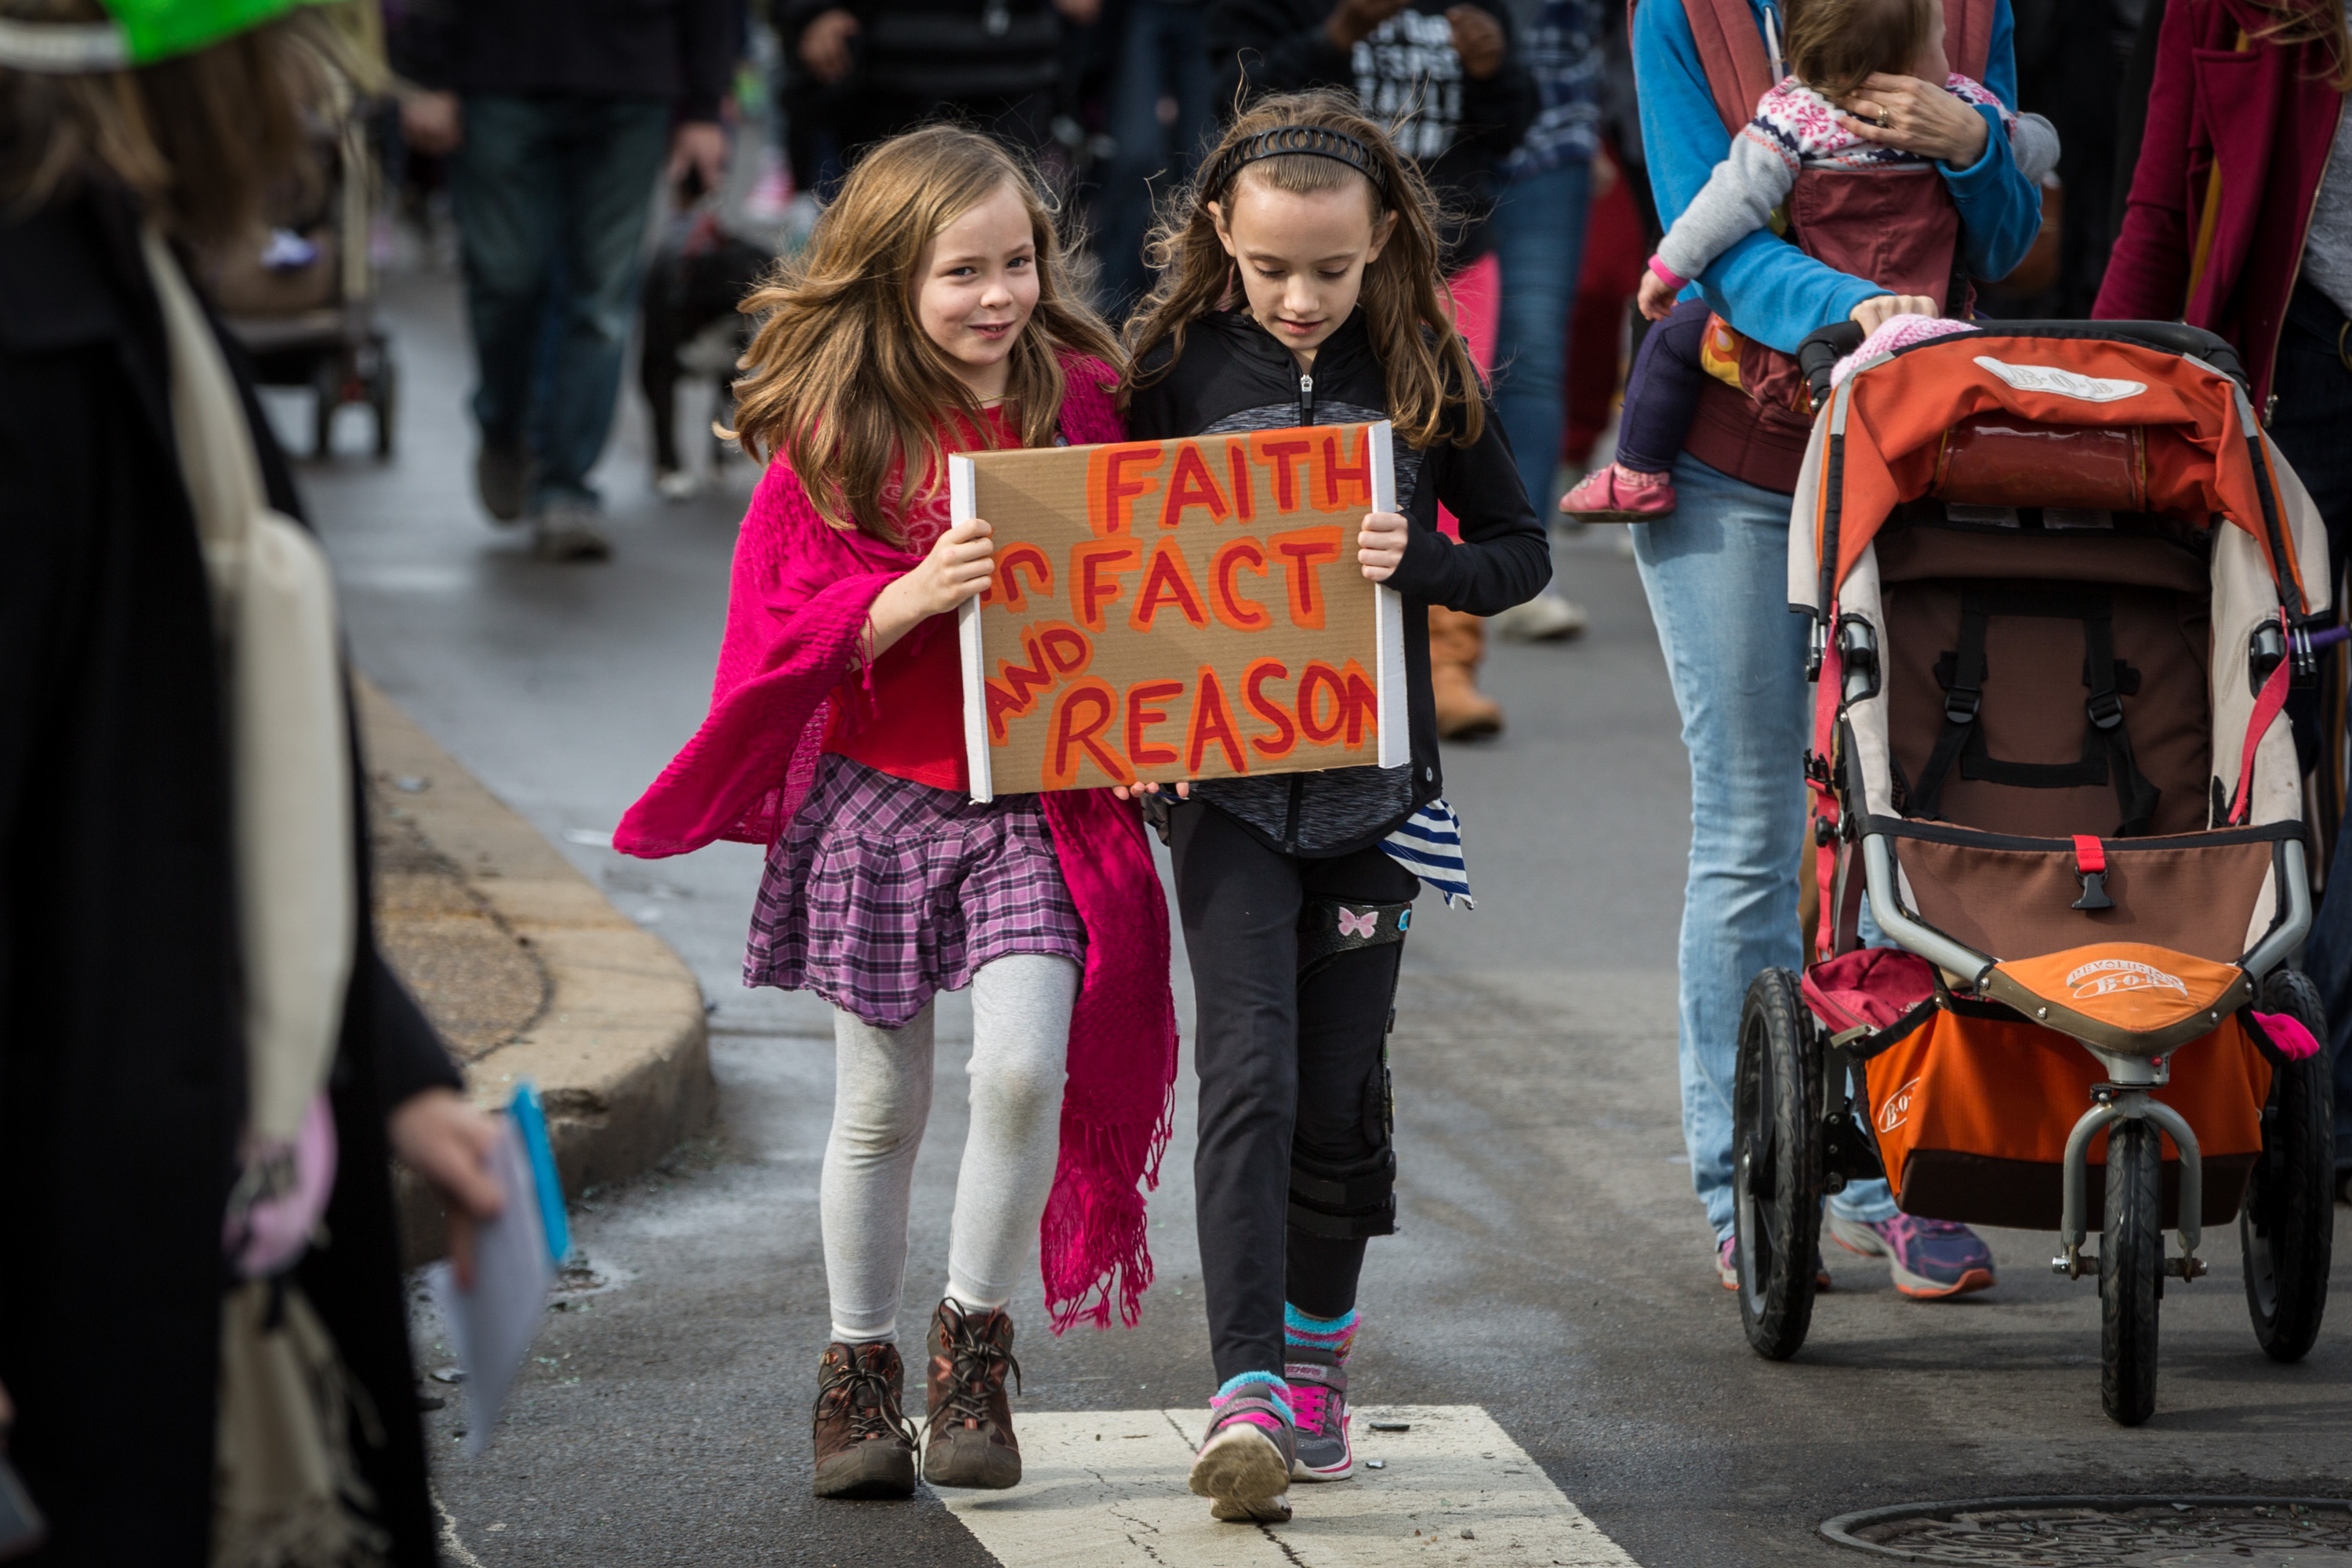 """Faith in Fact and Reason"" (Photo by Maranie Staab for PublicSource)"